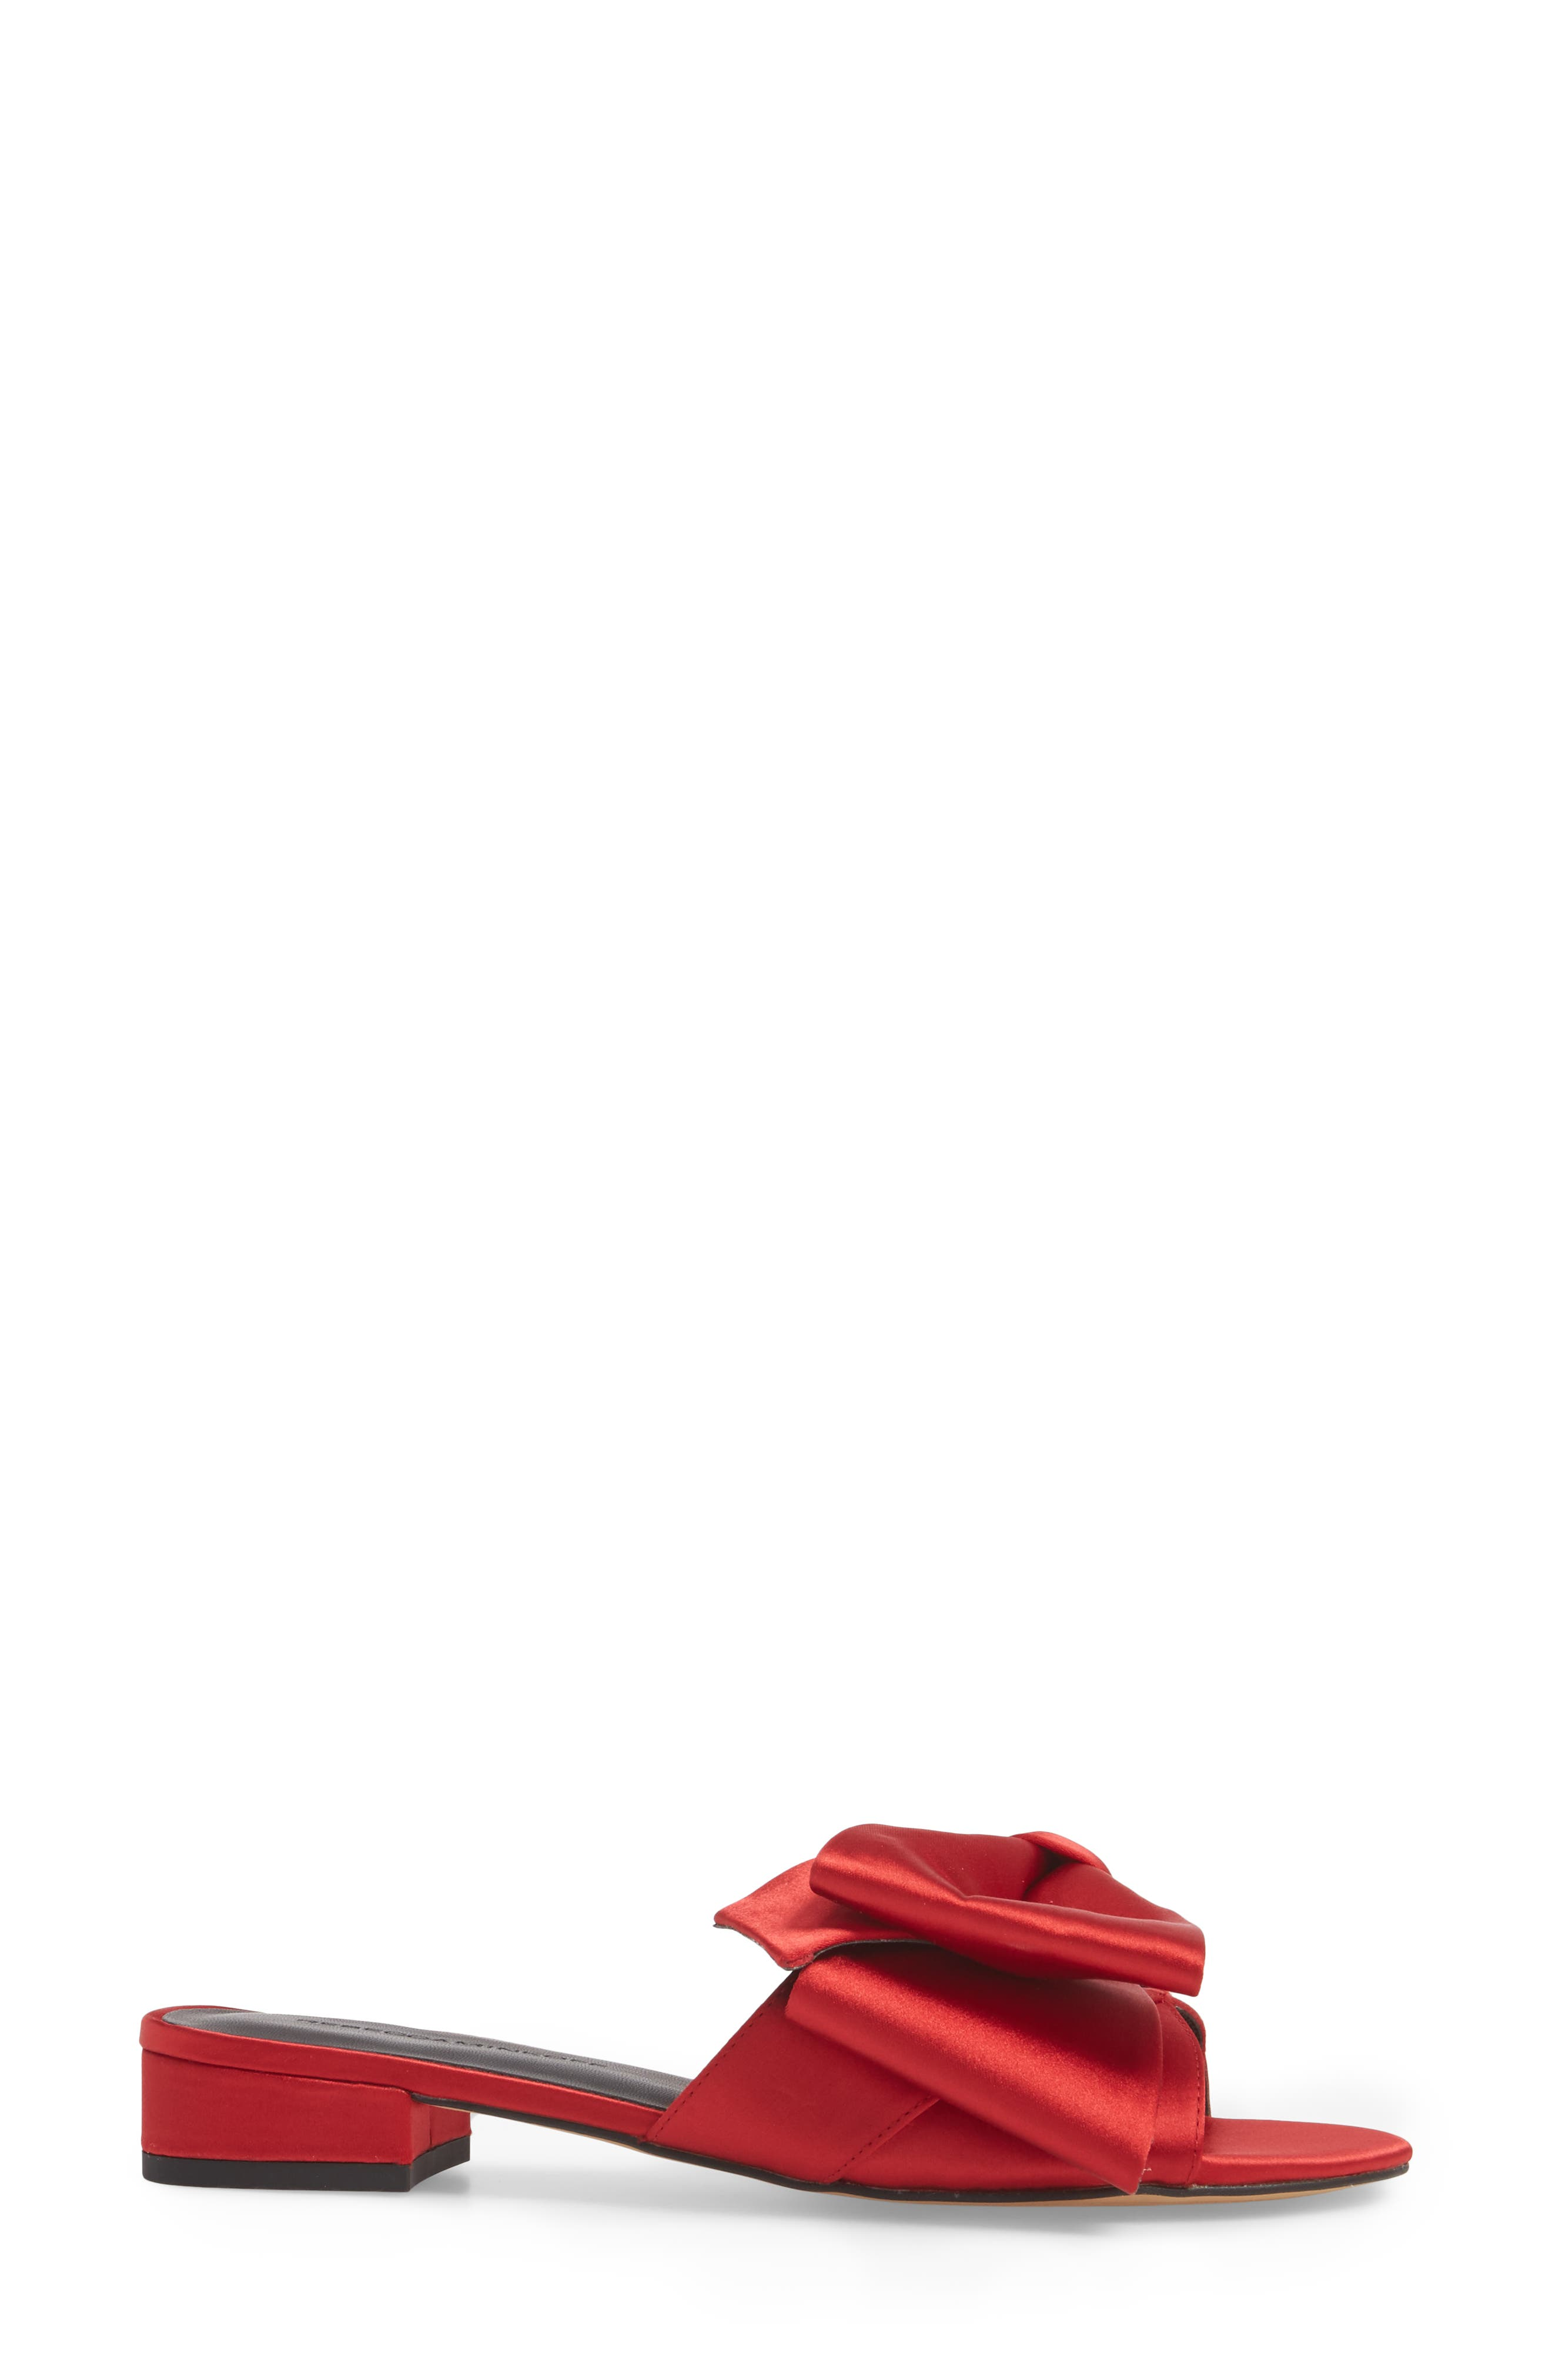 Calista Sandal,                             Alternate thumbnail 8, color,